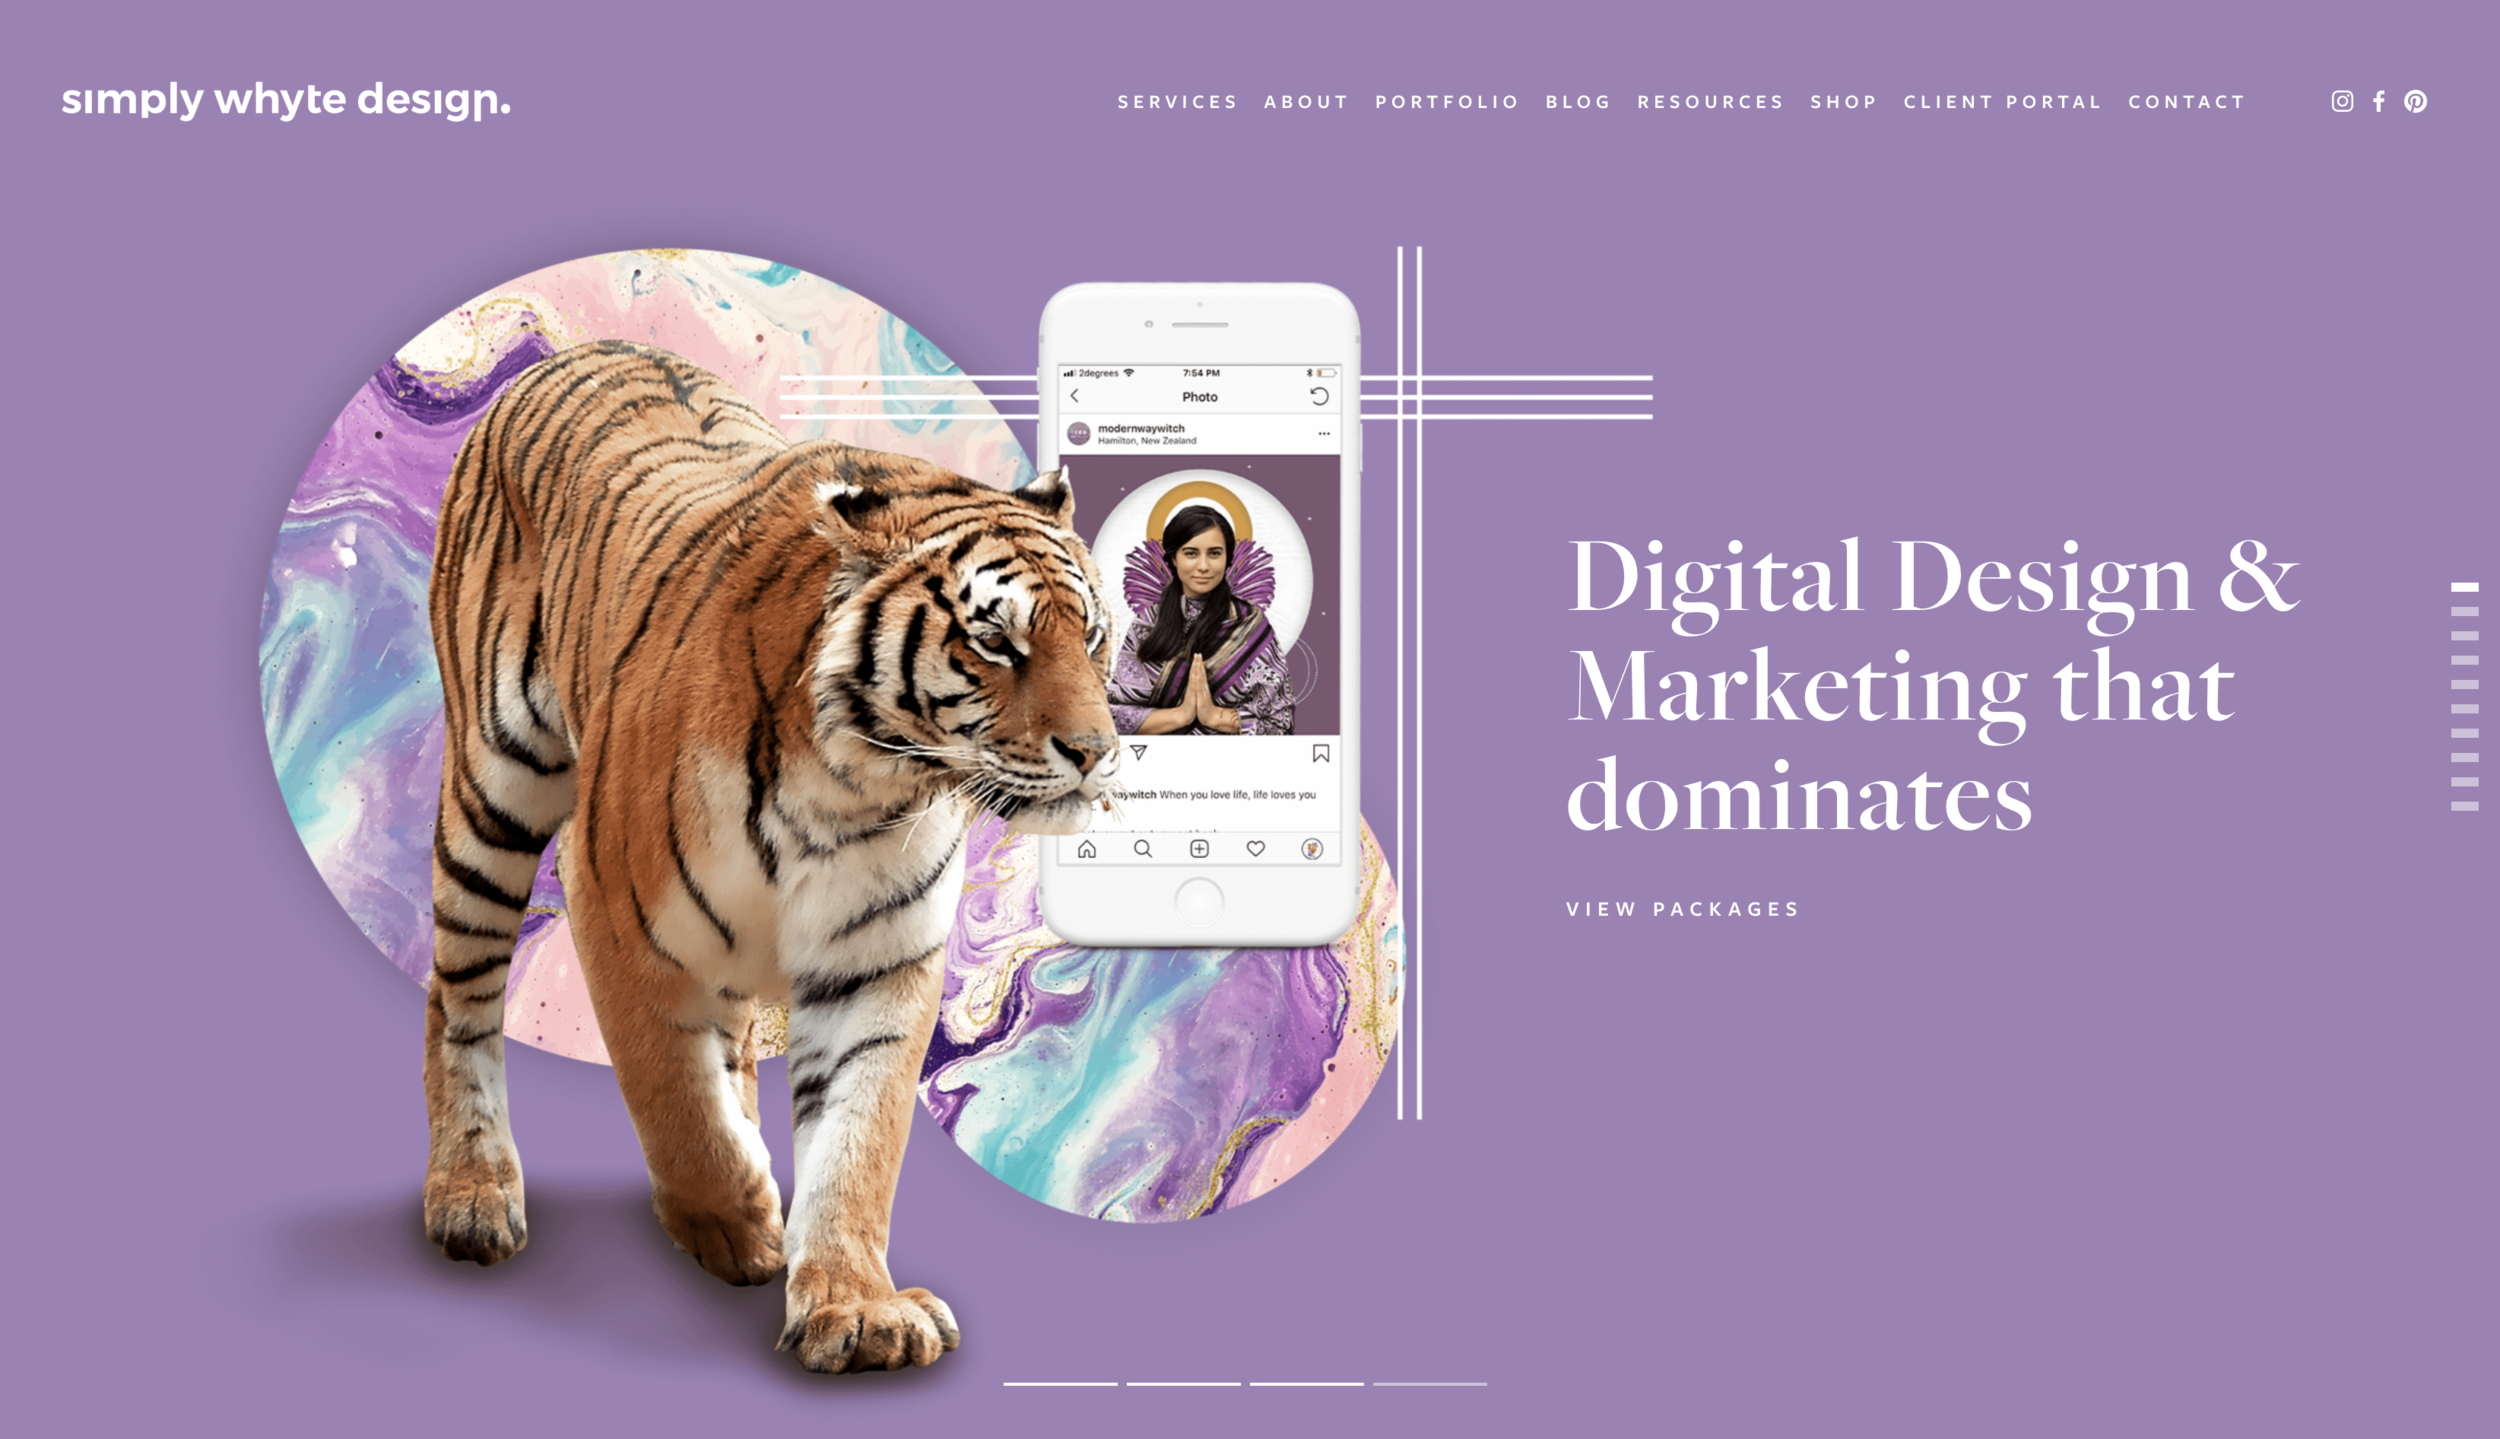 digital design and marketing simply whyte design